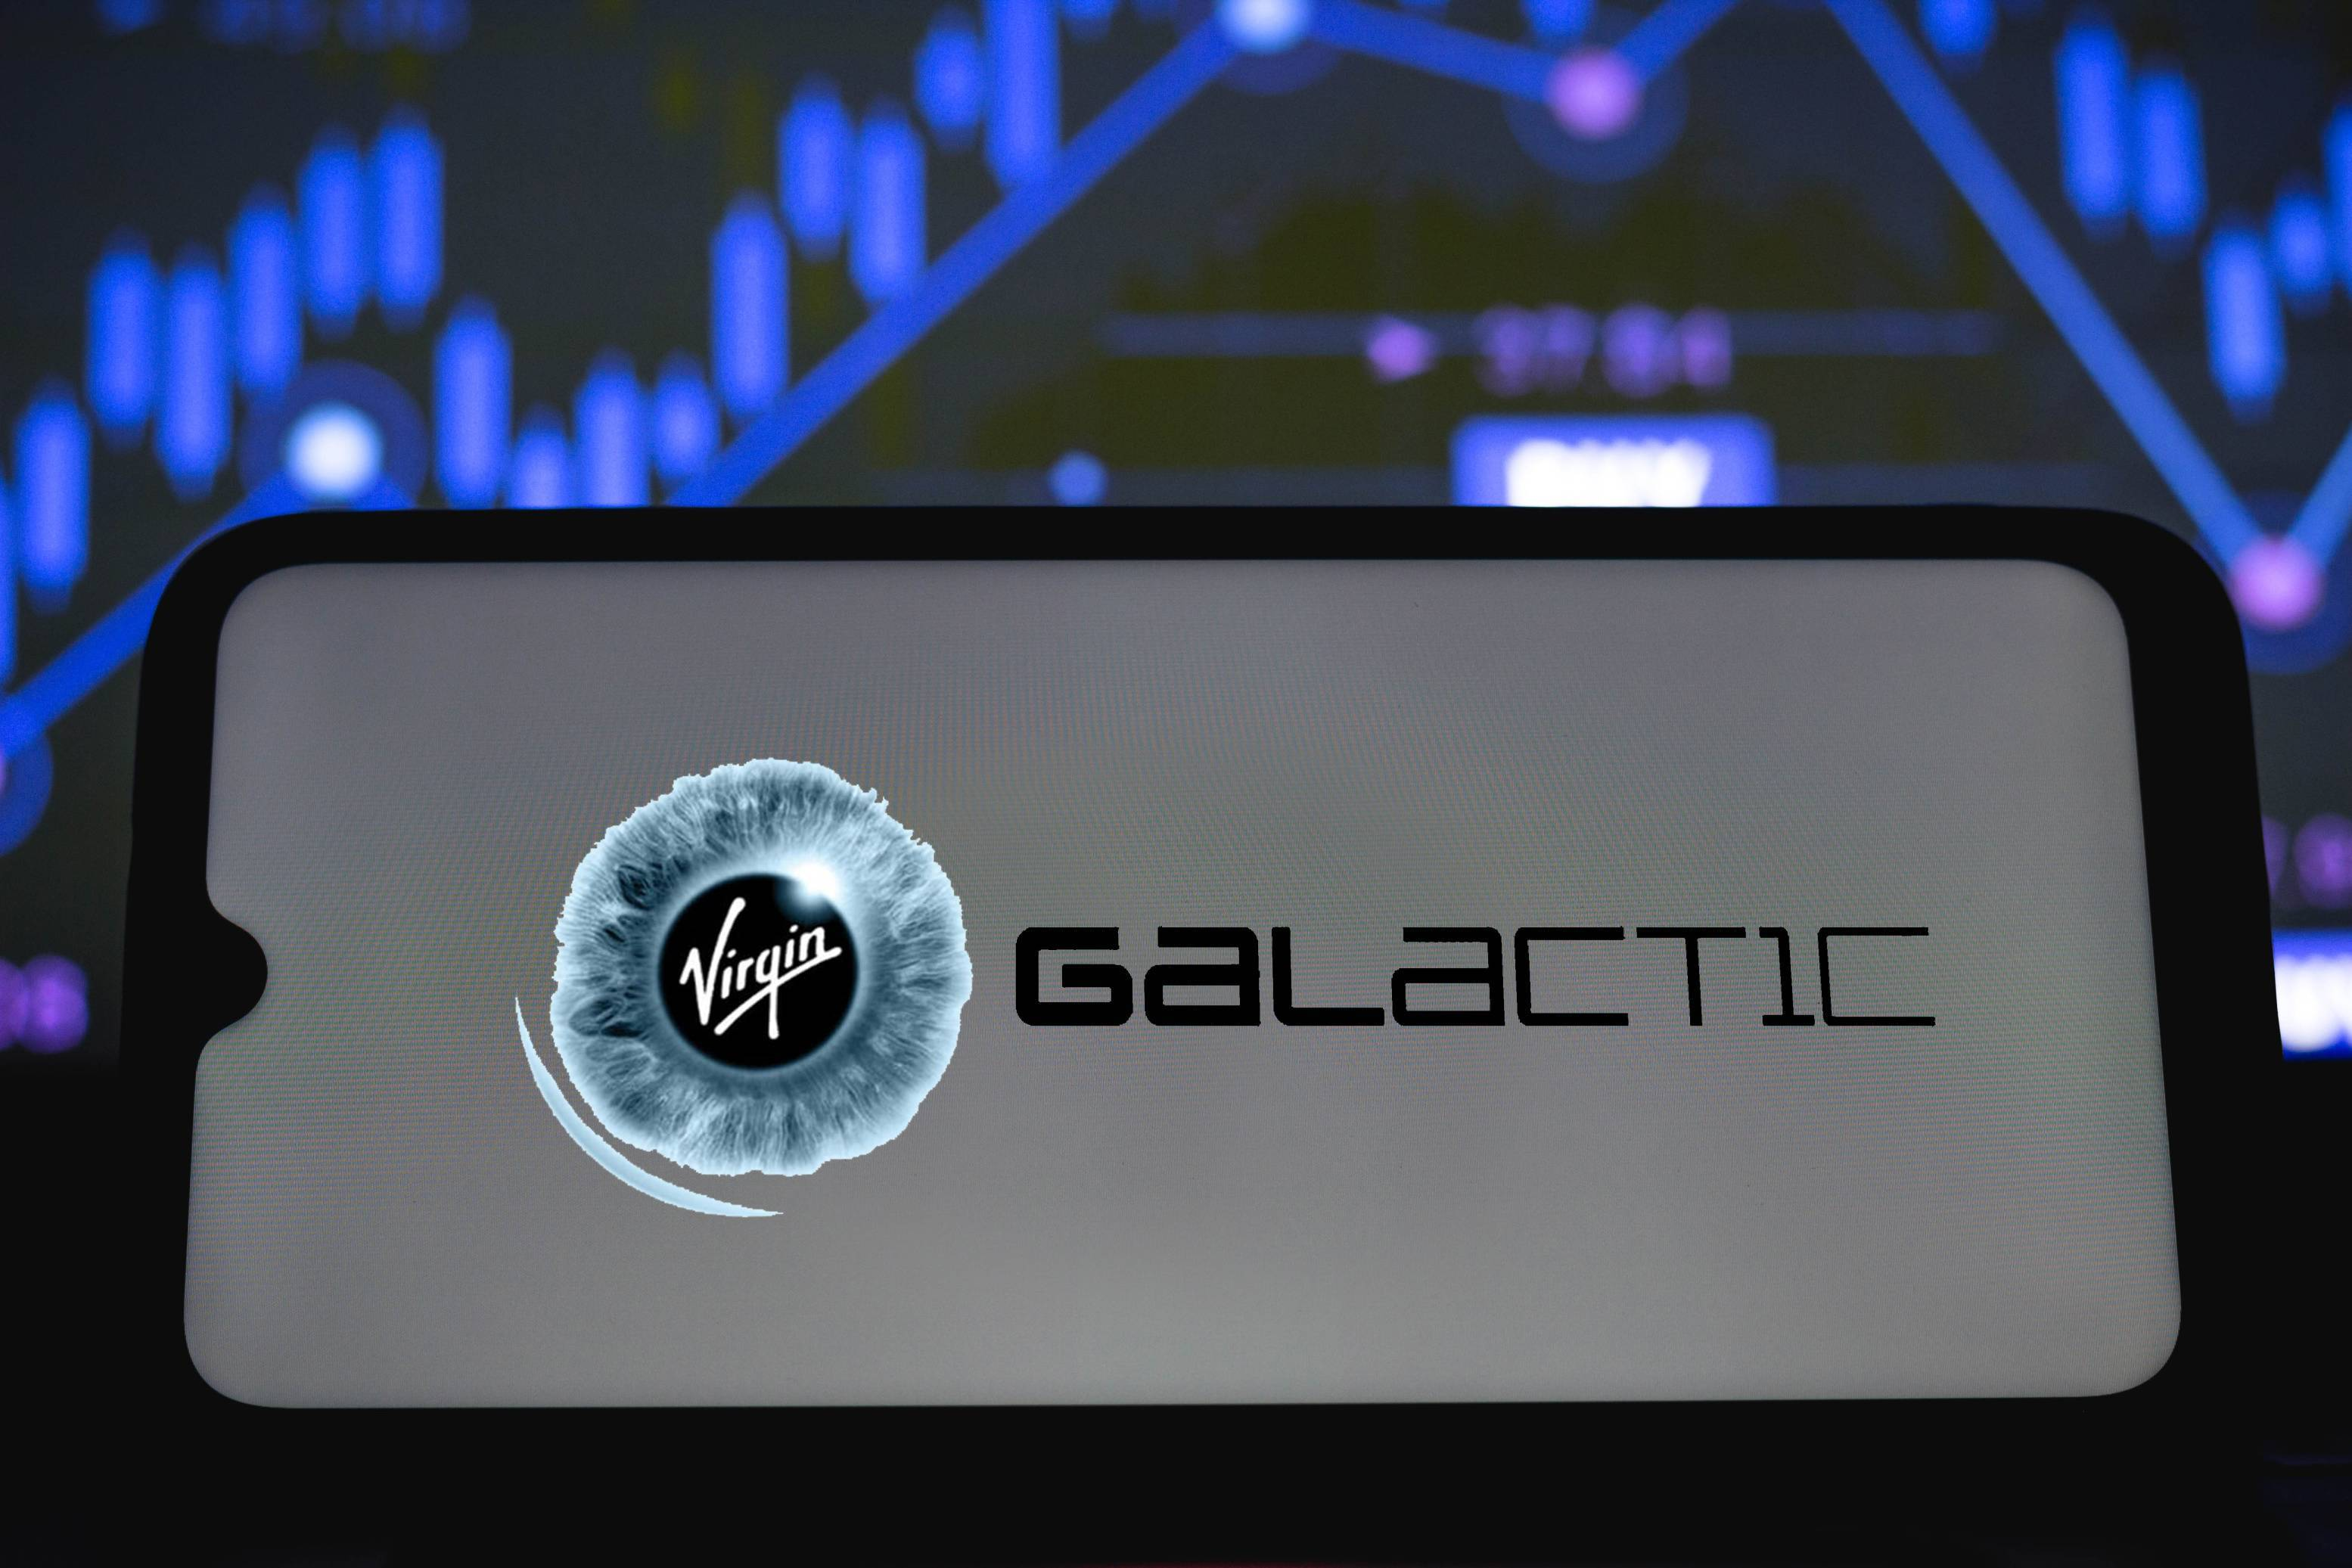 SPCE Stock Forecast – where will Virgin Galactic be in 5 years?